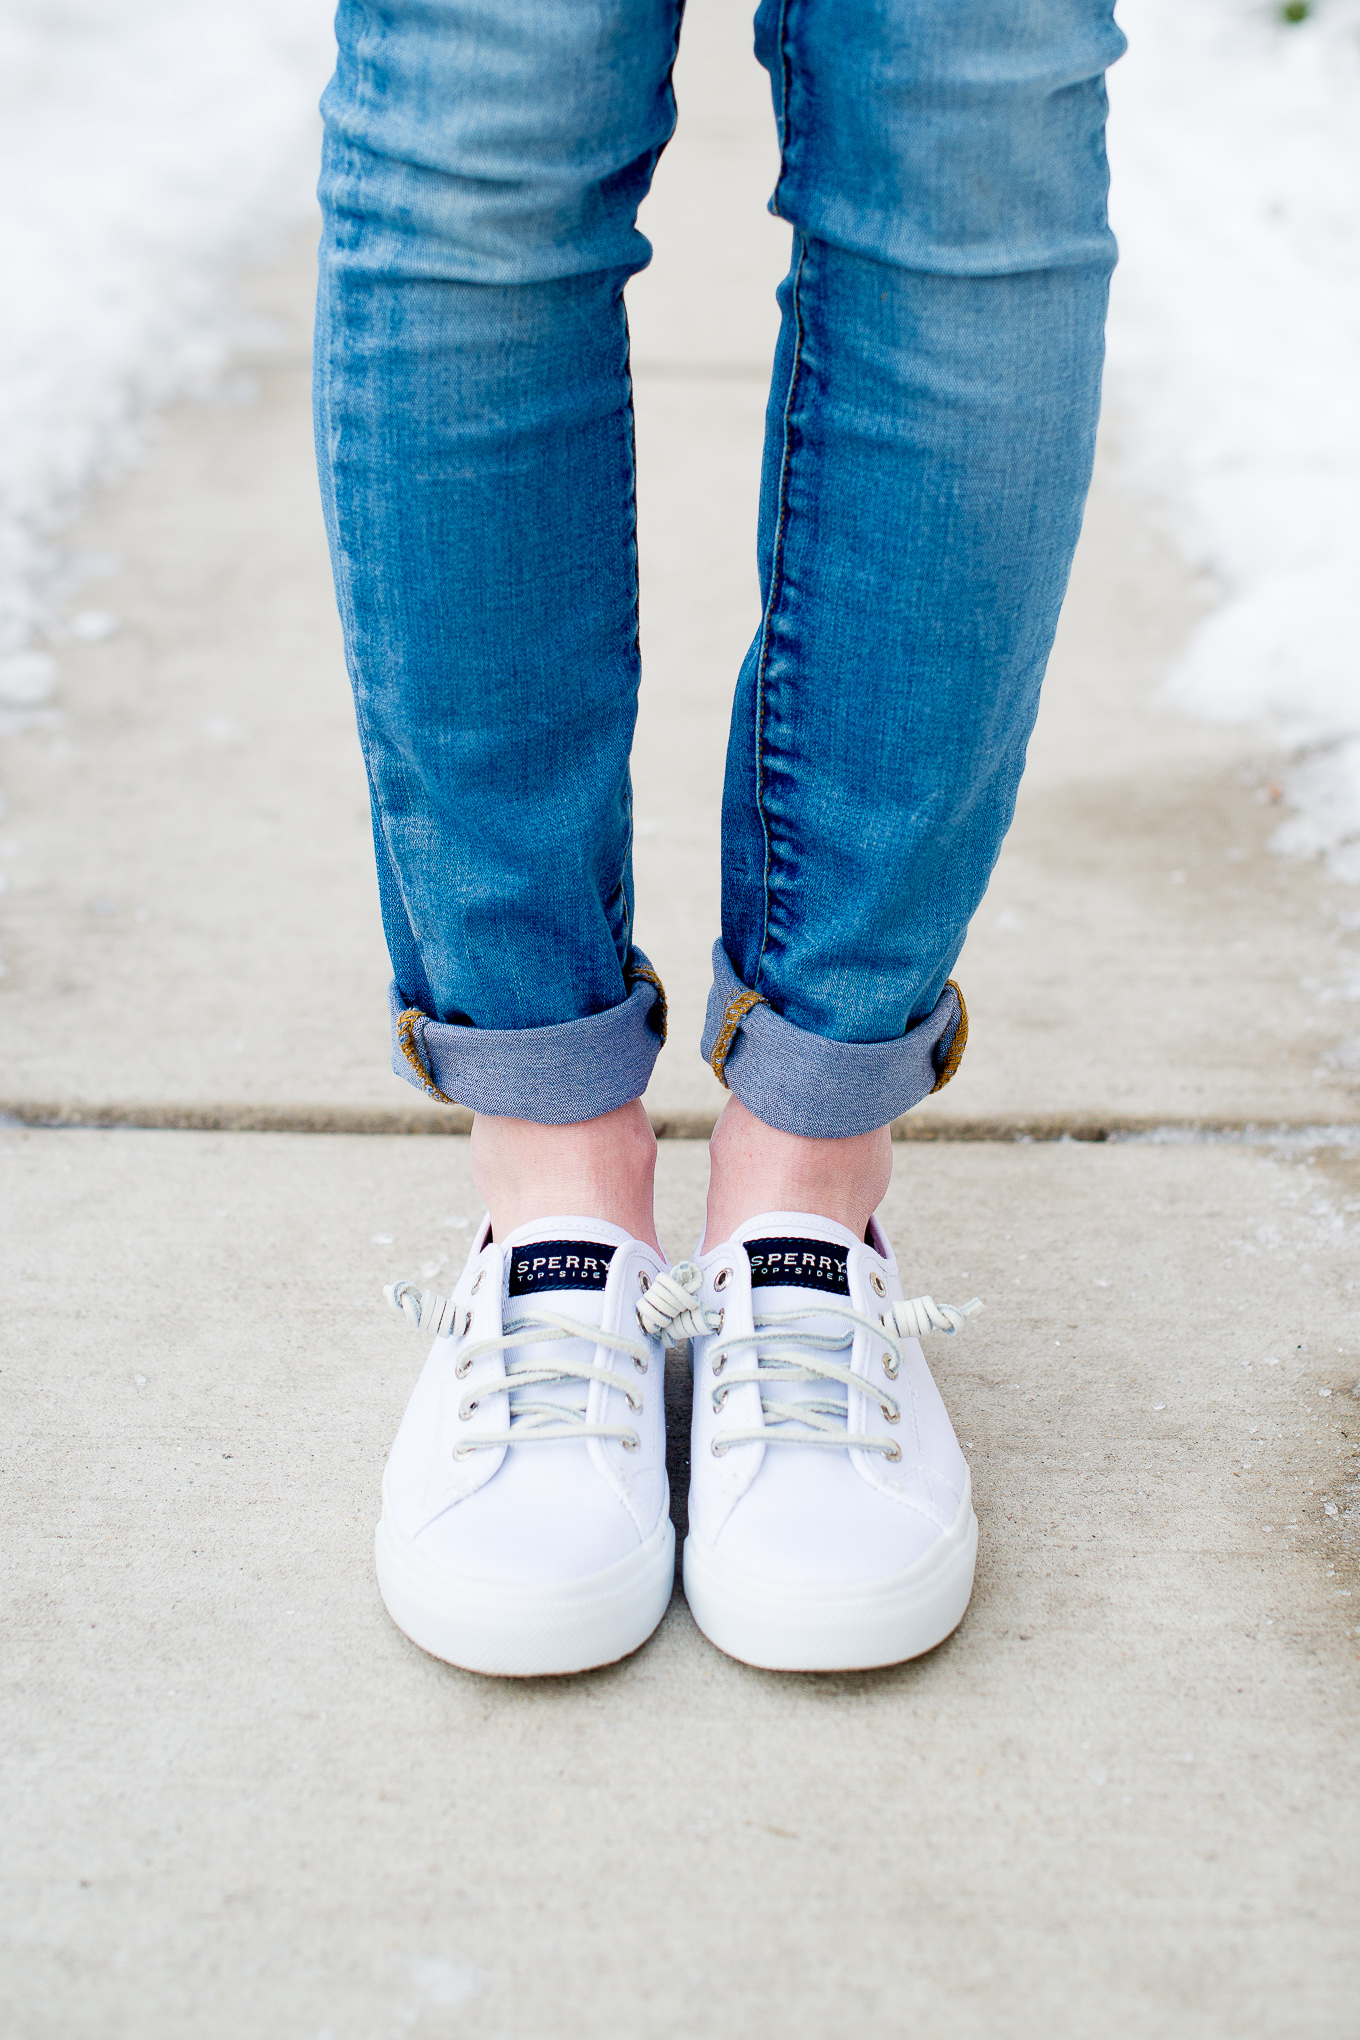 White Sneakers - Kelly in the City